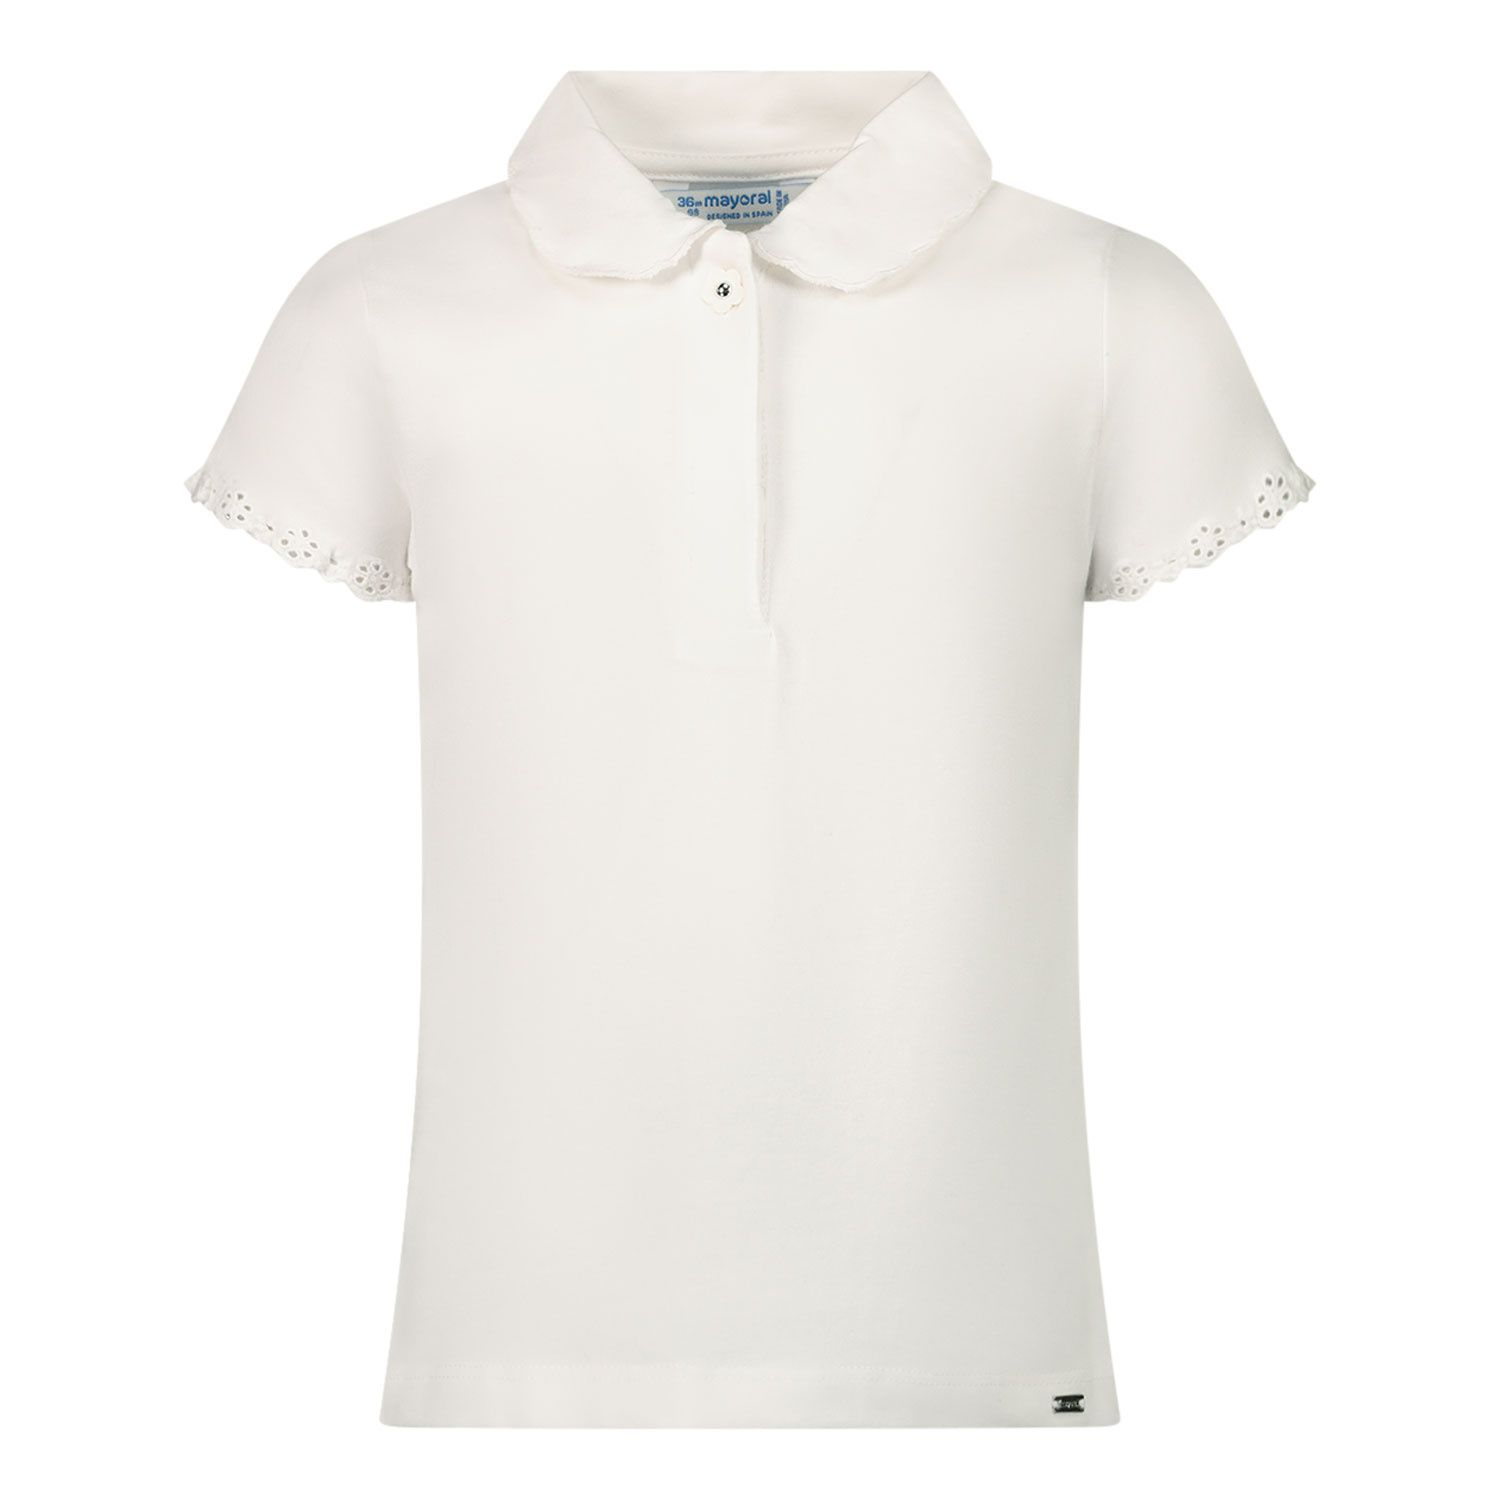 Afbeelding van Mayoral 1176 baby polo wit